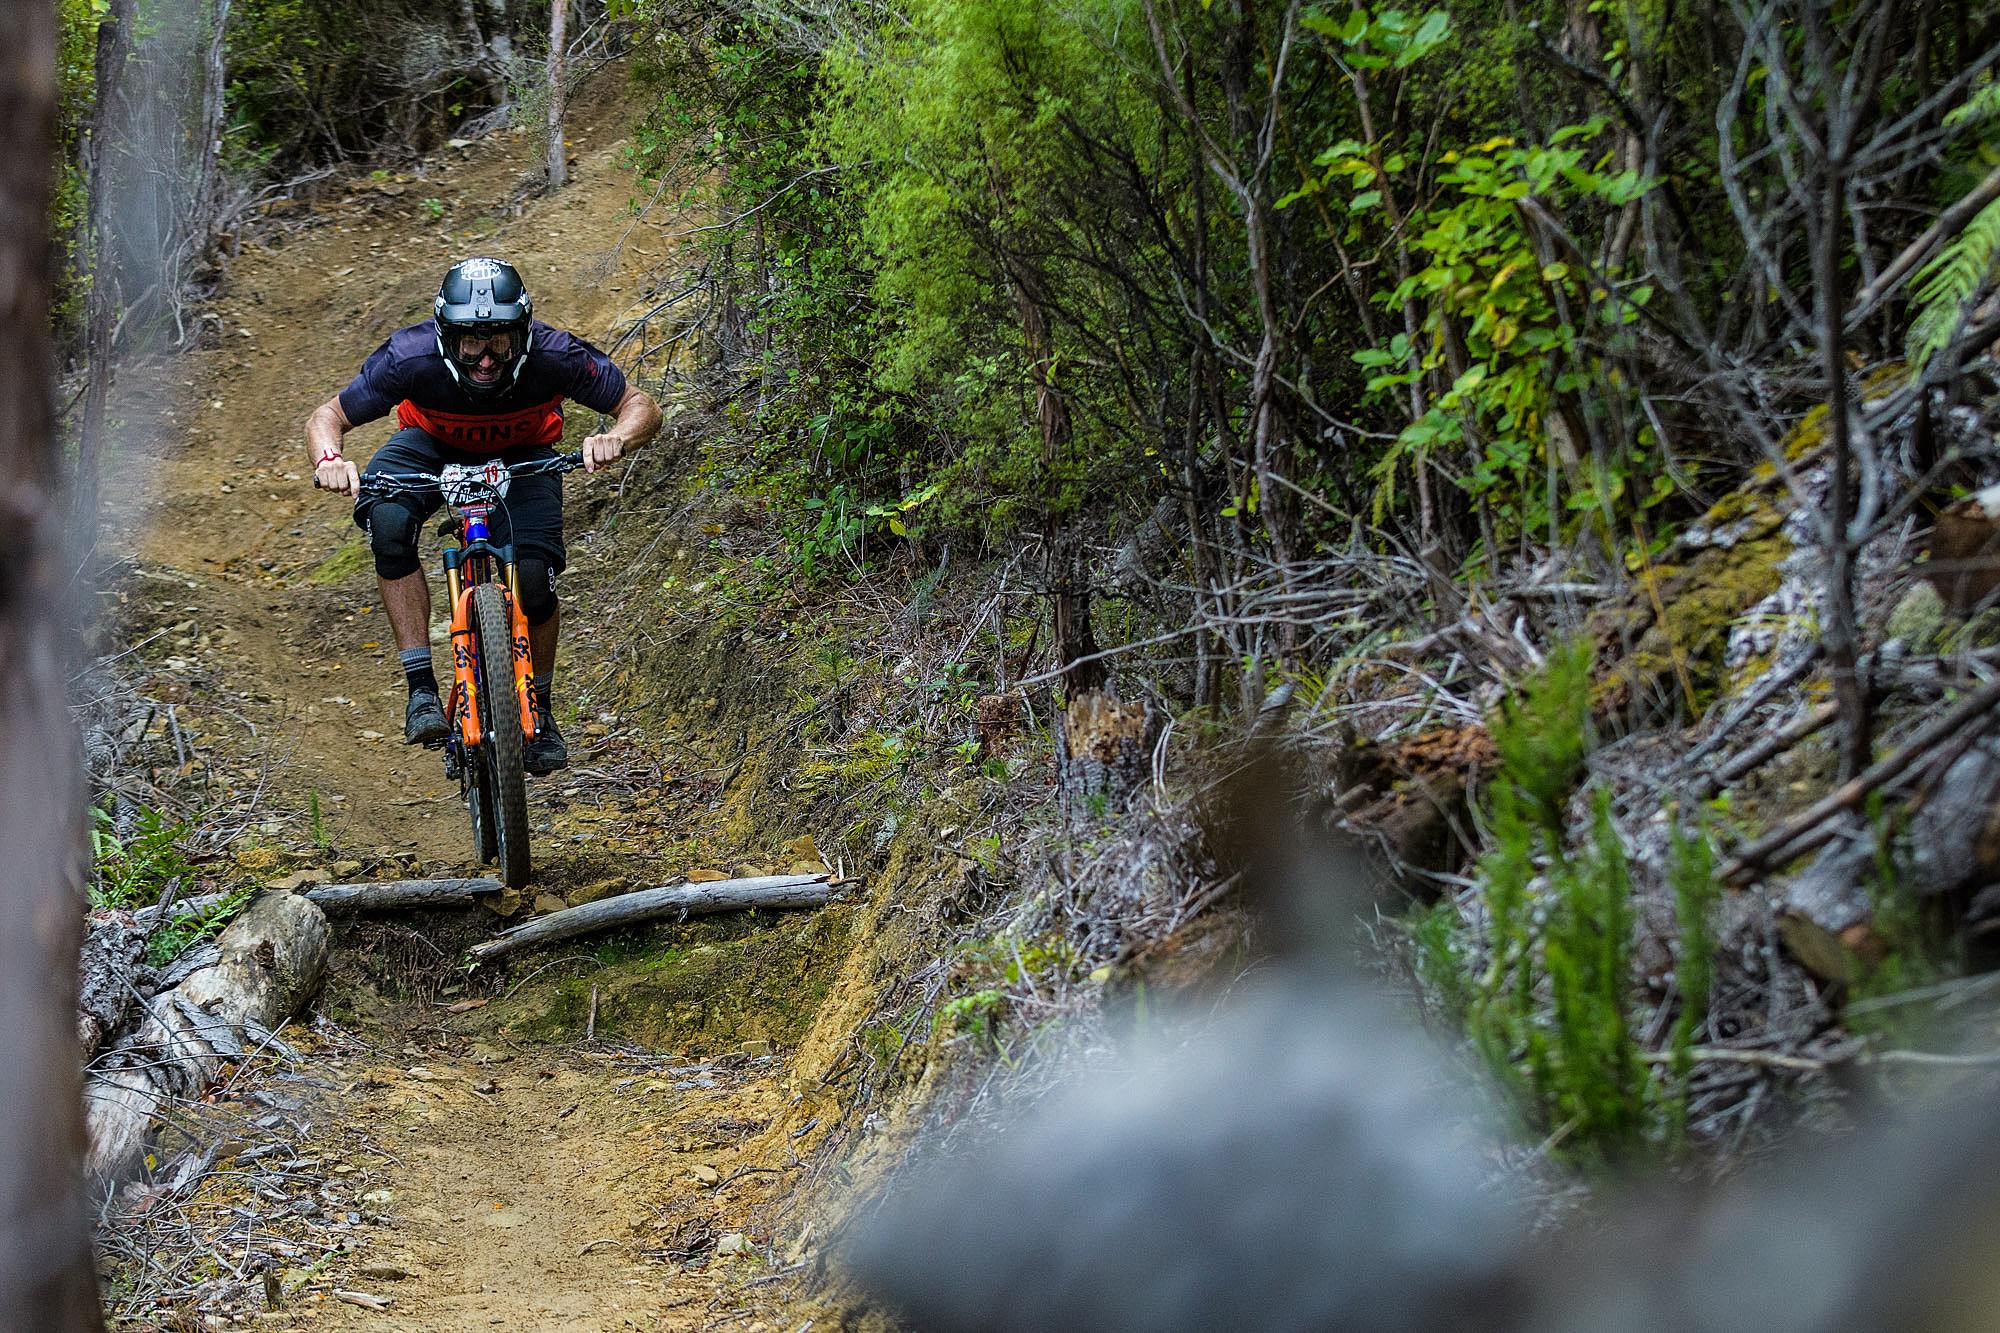 Conor Macfarlane made the last minute trip up from Queenstown to race. Known for his slopestyle and freeride ability, he's no slouch on a trail bike either.